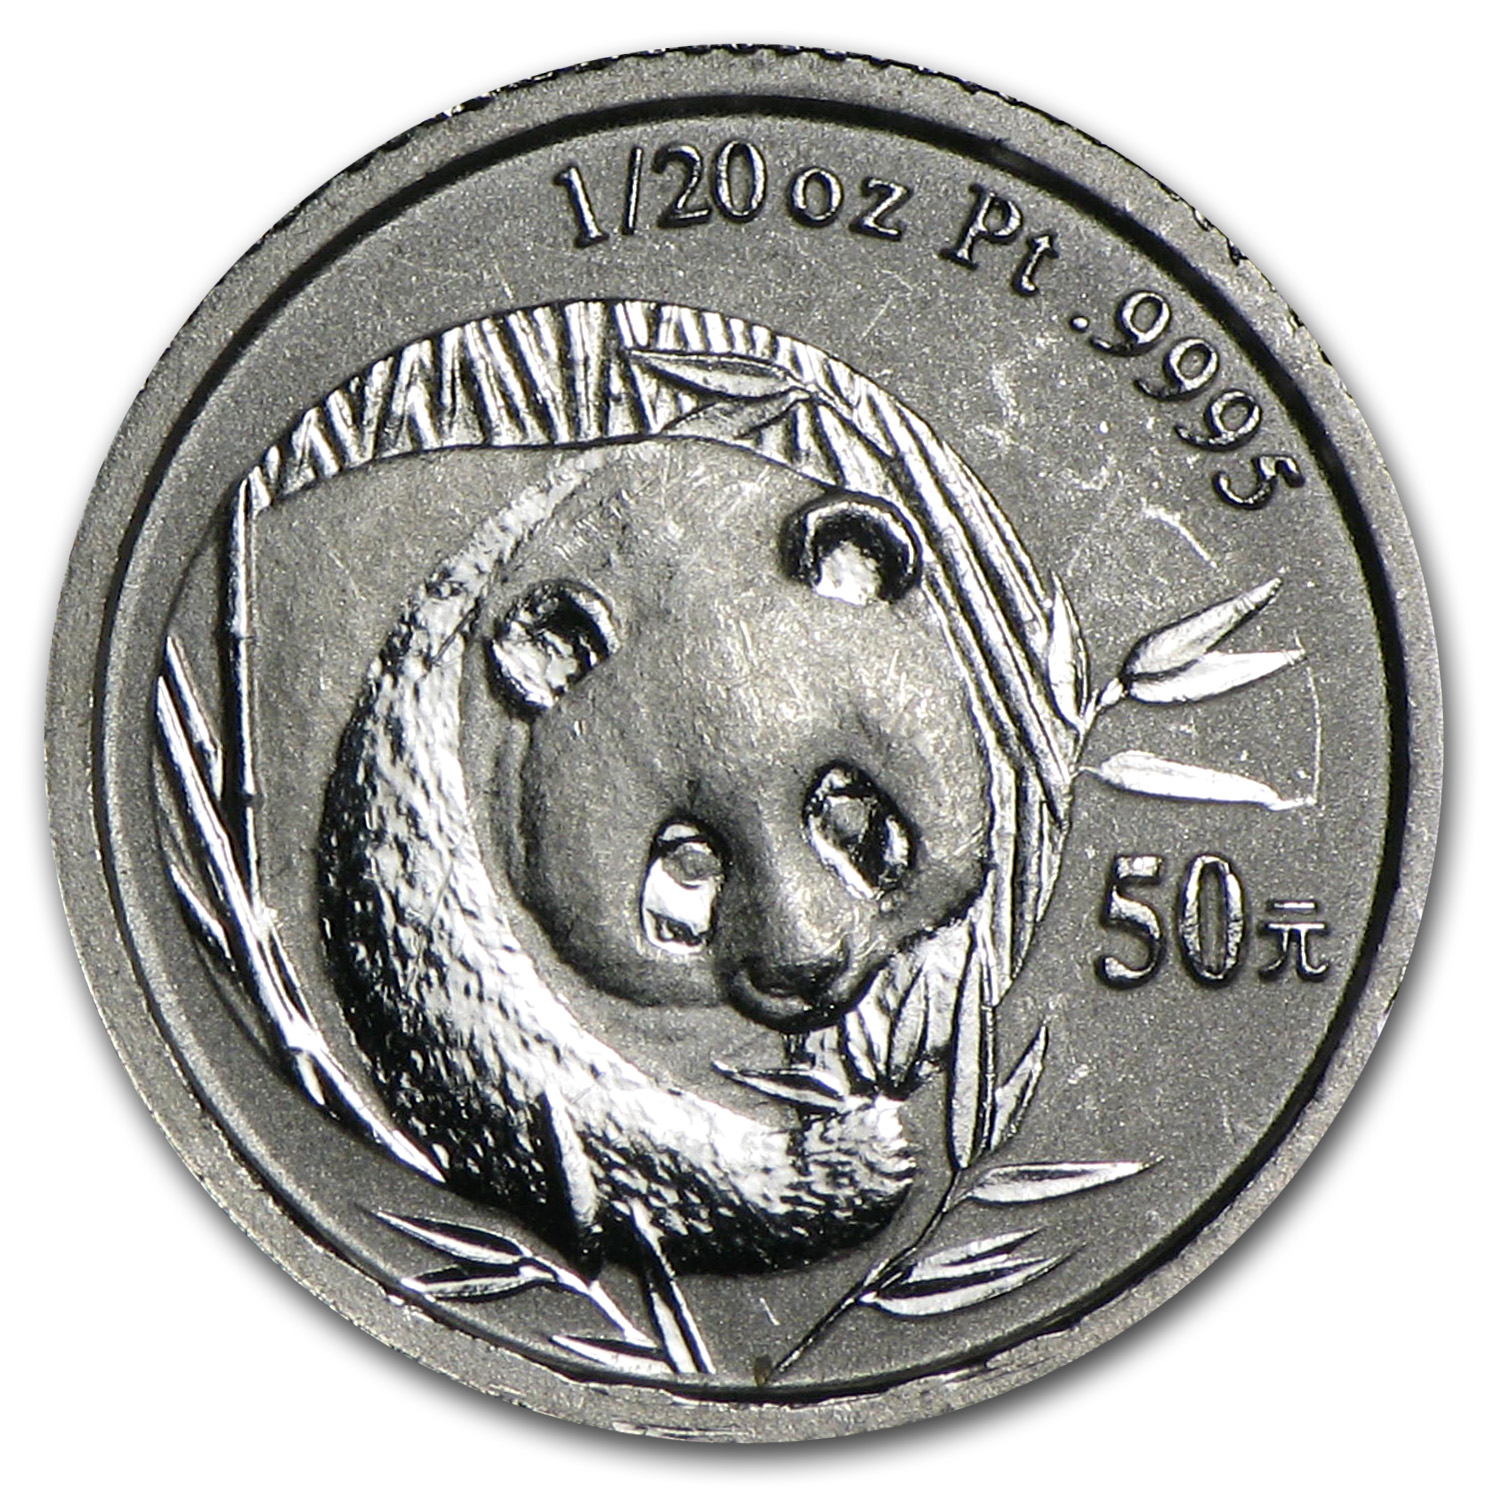 2003 China 1/20 oz Platinum Panda (Abrasions)